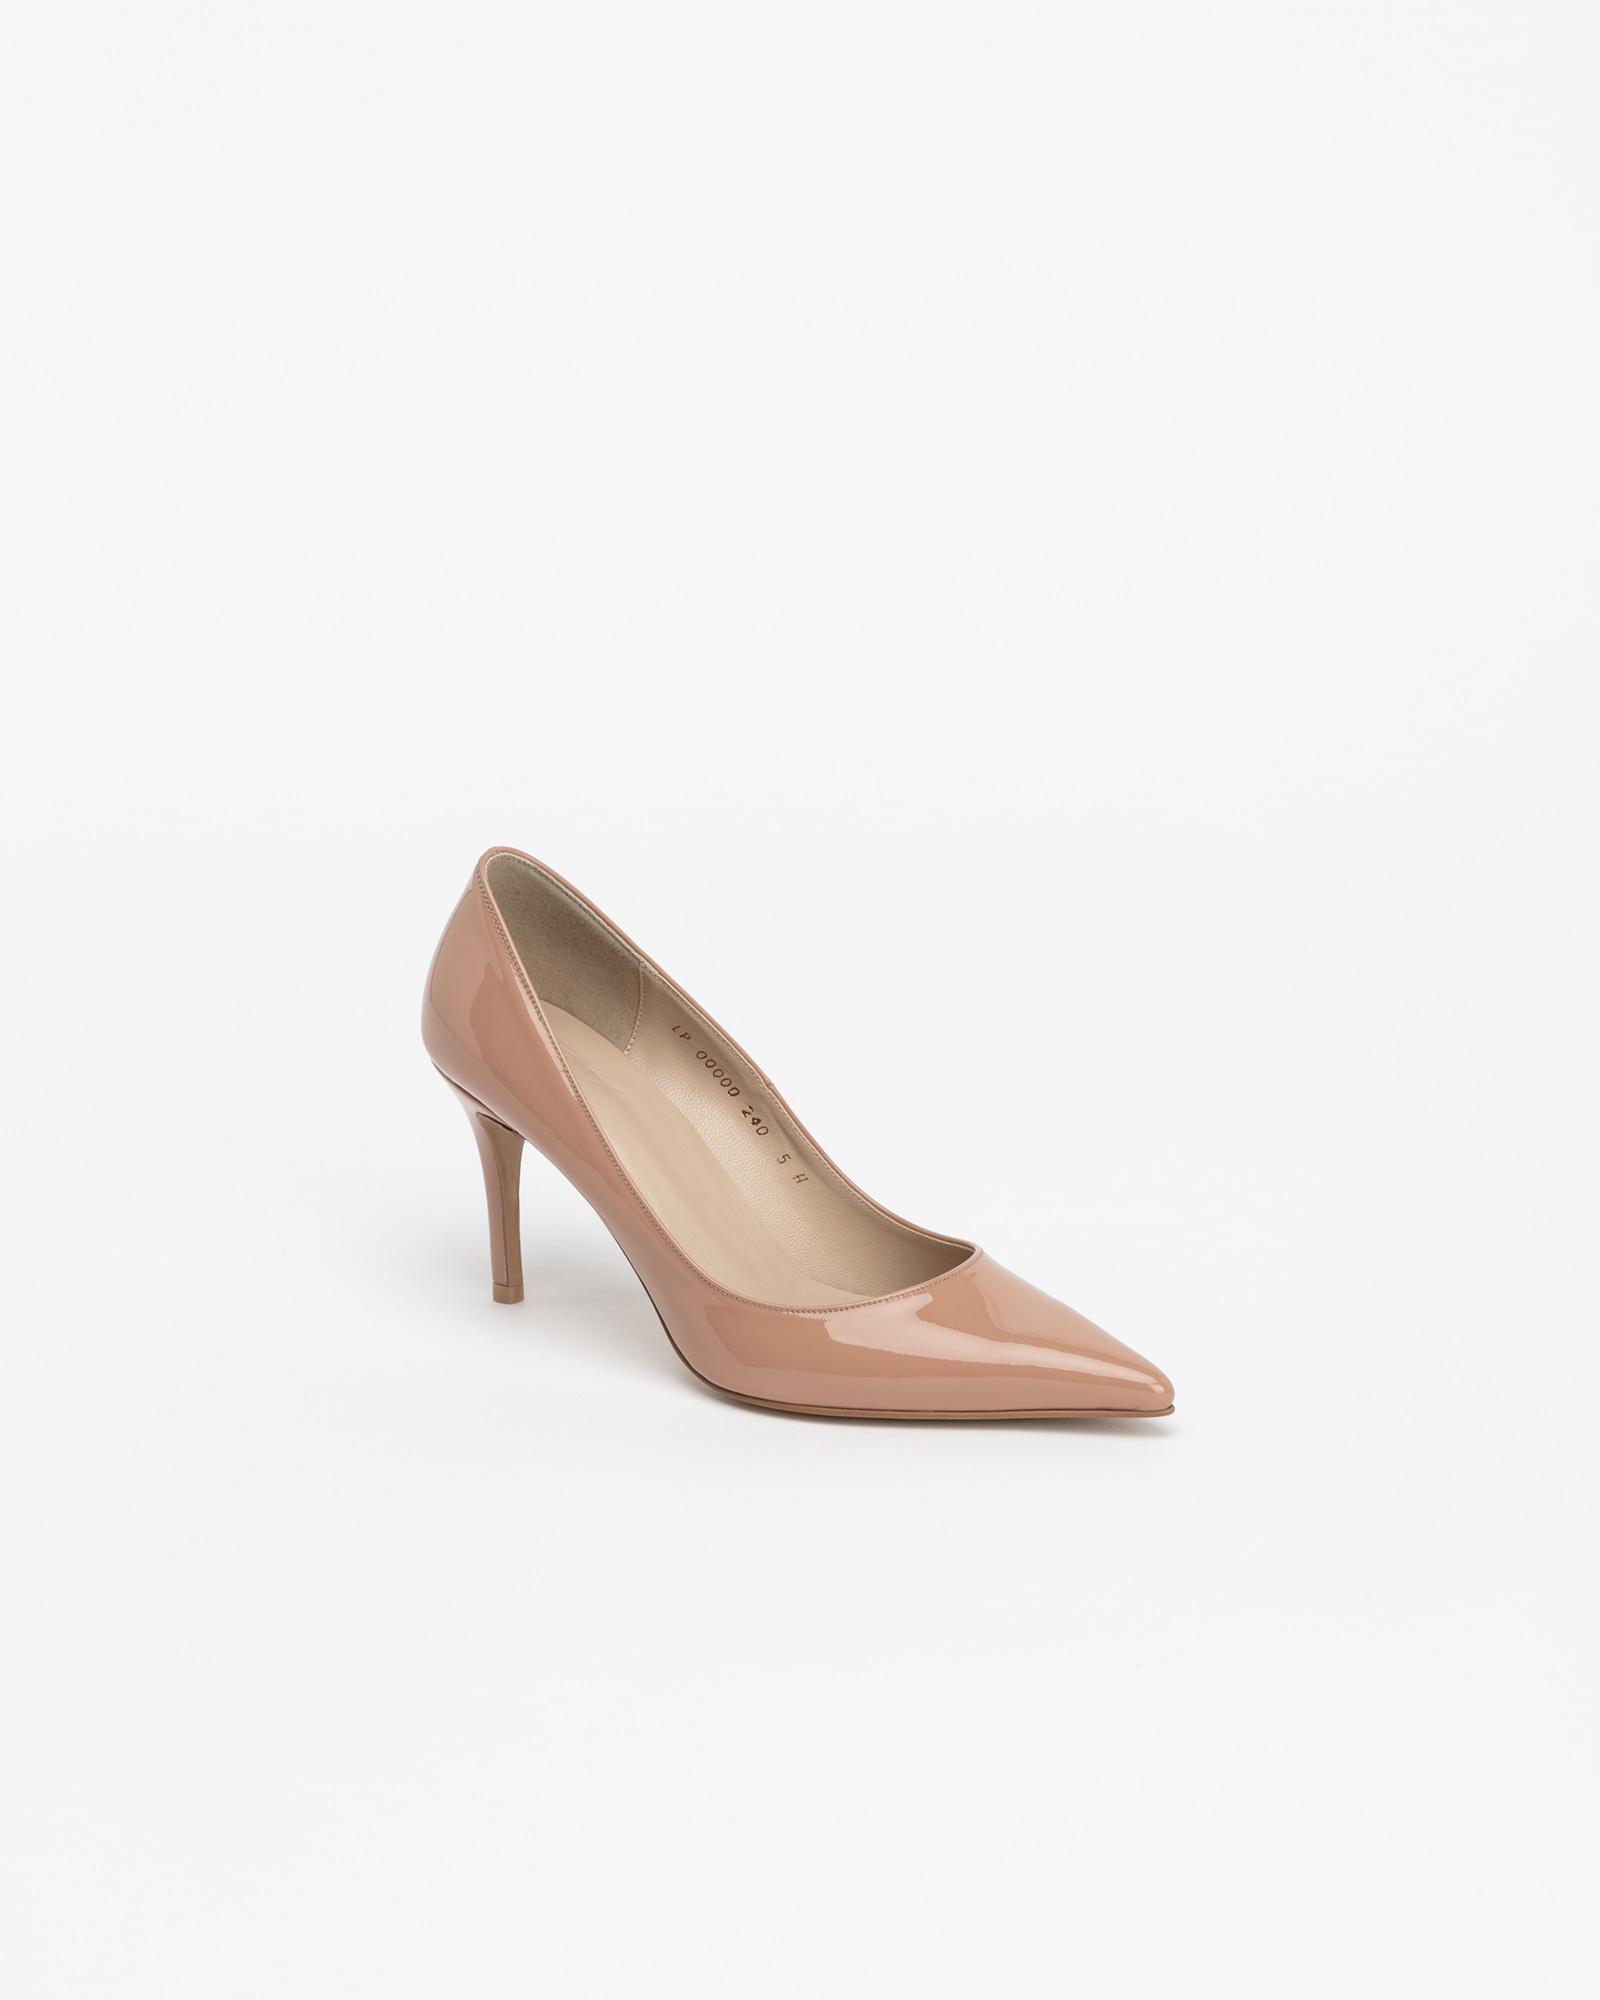 Chauffeur Stilletto Pumps in Neo Indy Pink